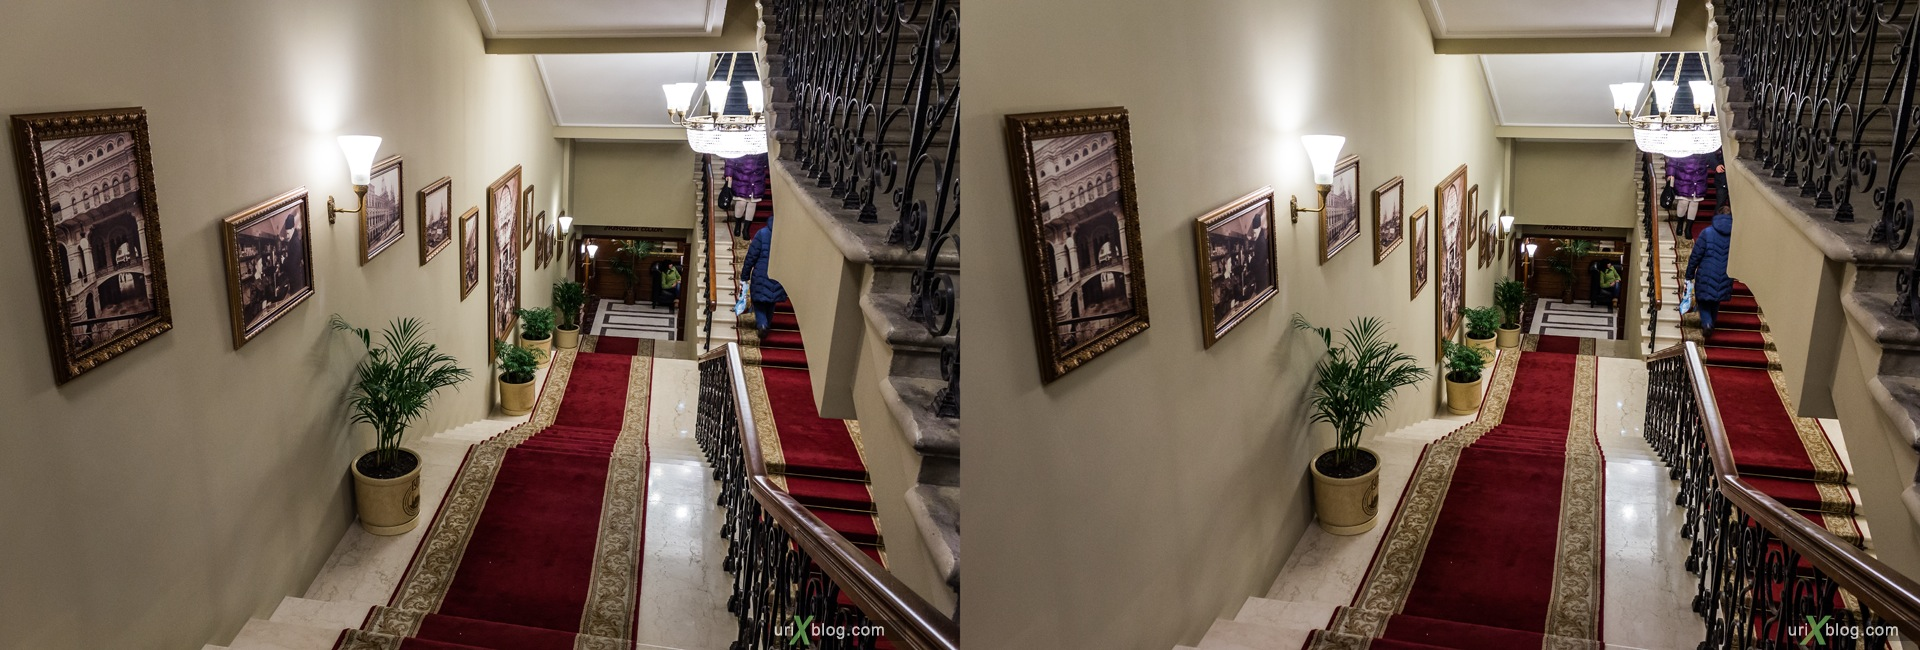 2013, Moscow, Russia, GUM, ancient toilet, wc, shop, mall, 3D, stereo pair, cross-eyed, crossview, cross view stereo pair, stereoscopic